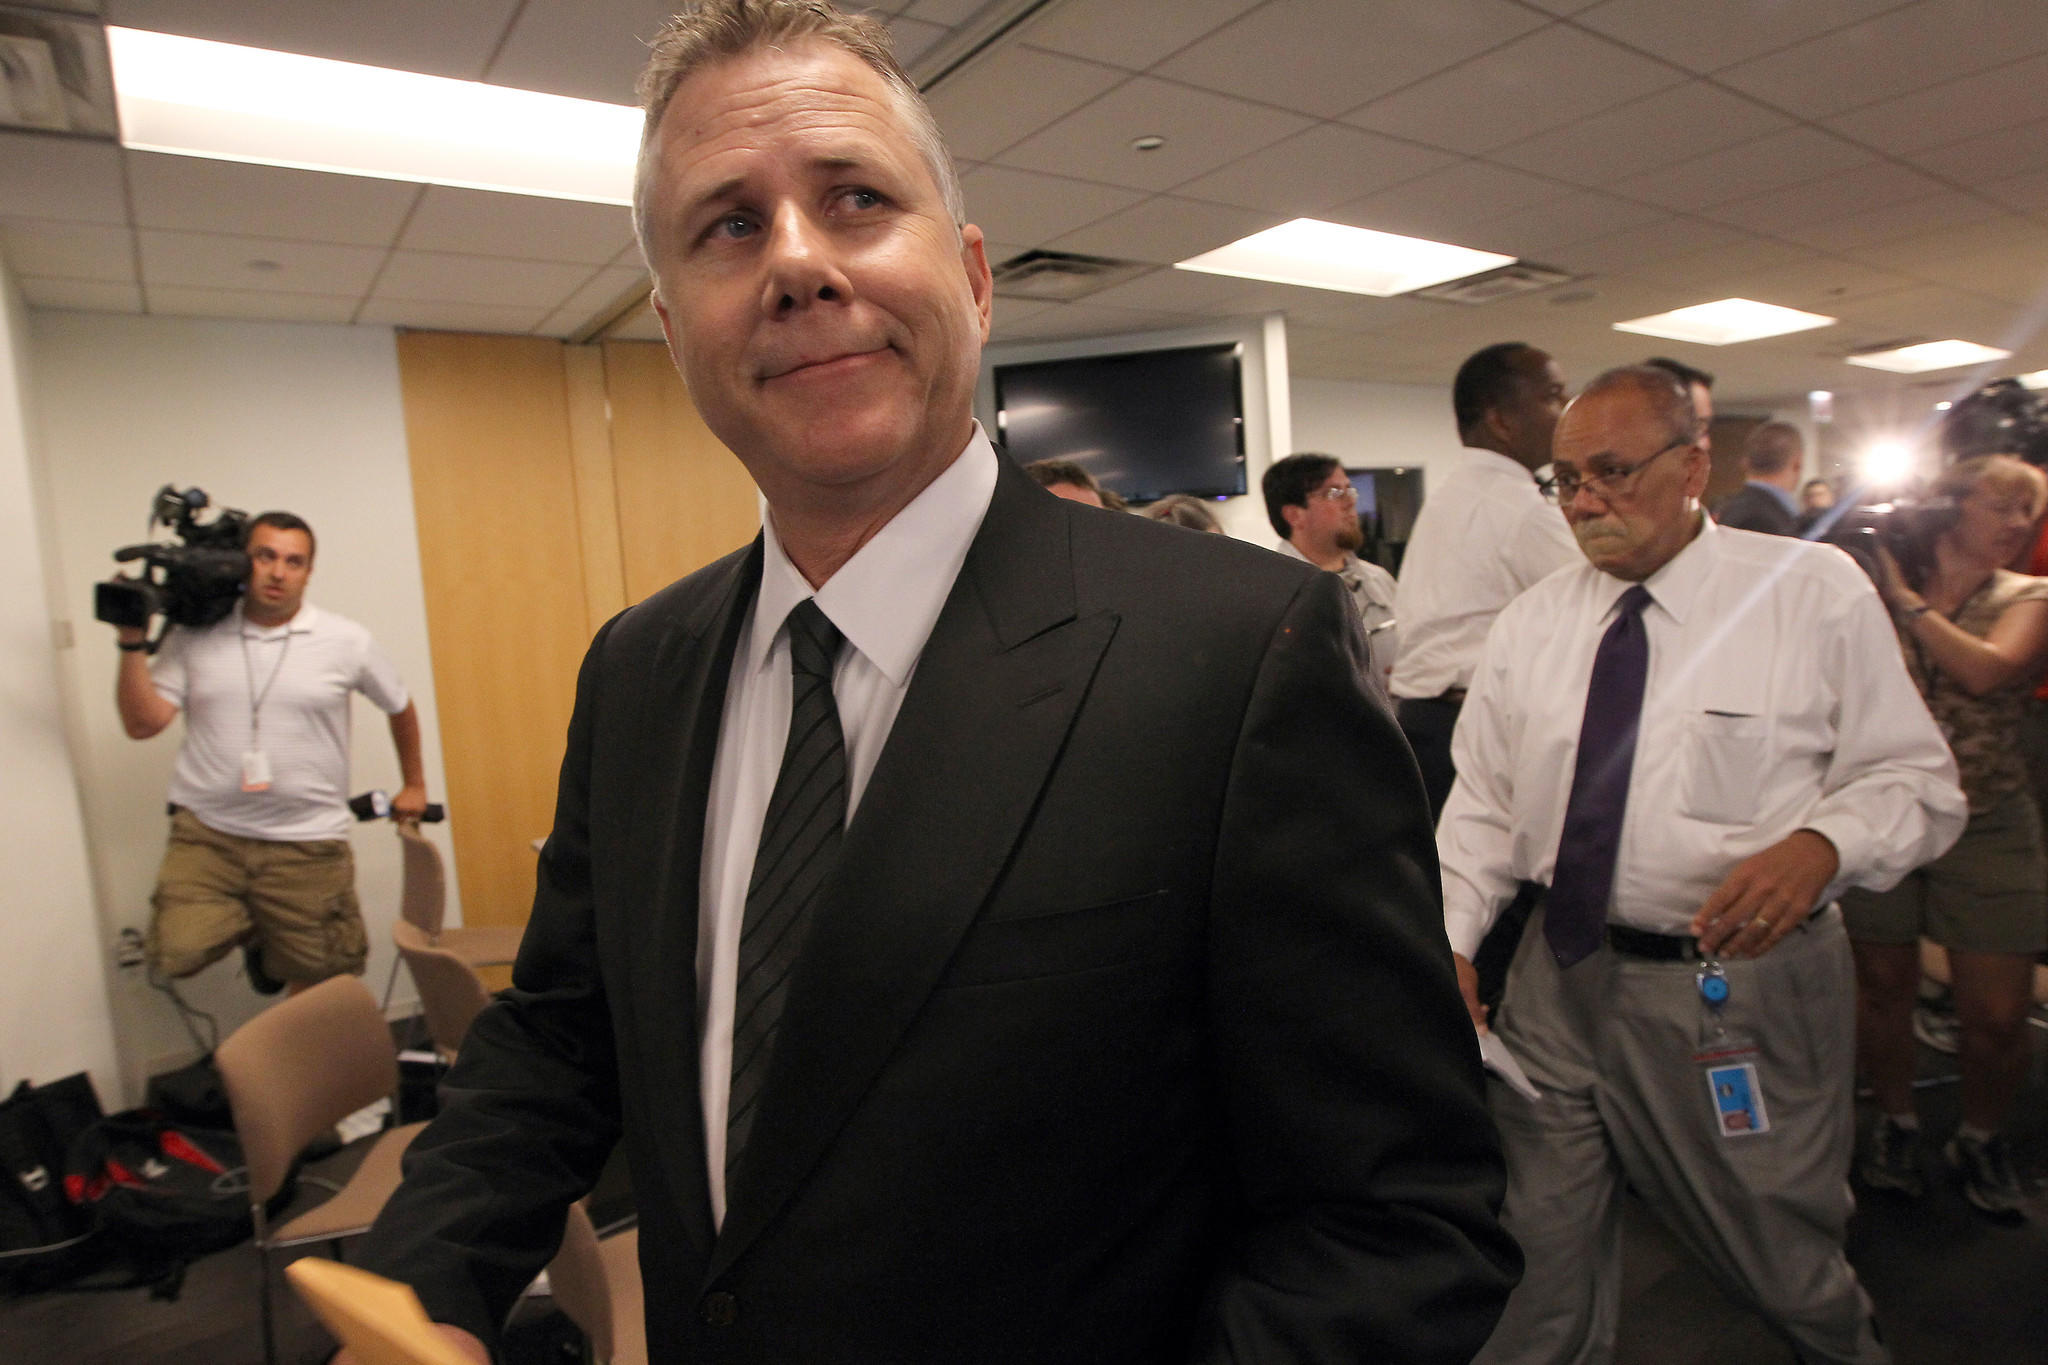 Ousted Metra CEO Alex Clifford during a break in hearings before the RTA board on July 17, 2013.